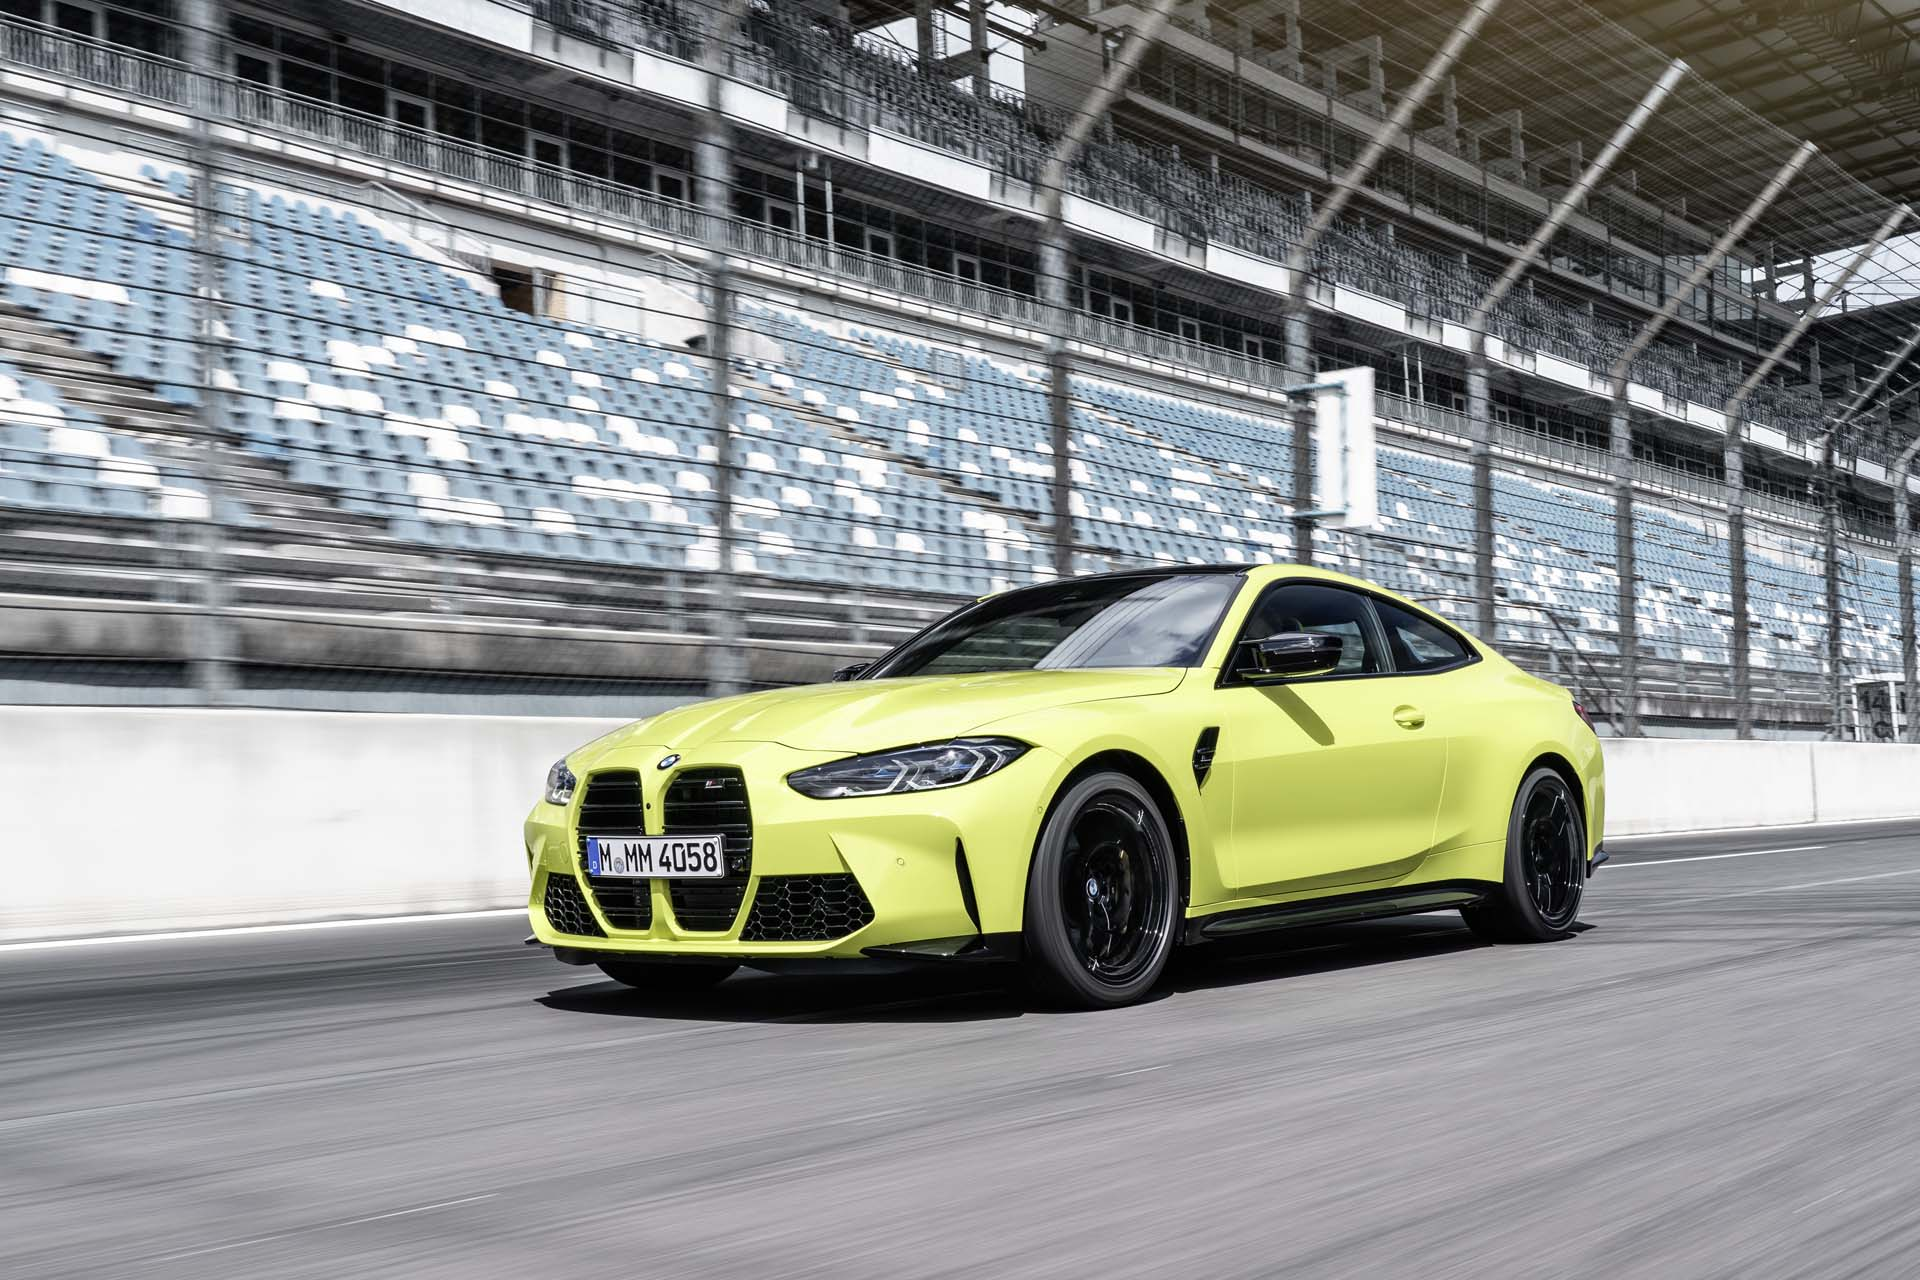 Preview 2021 Bmw M3 Sedan And M4 Coupe Offers Up To 503 Hp Awd